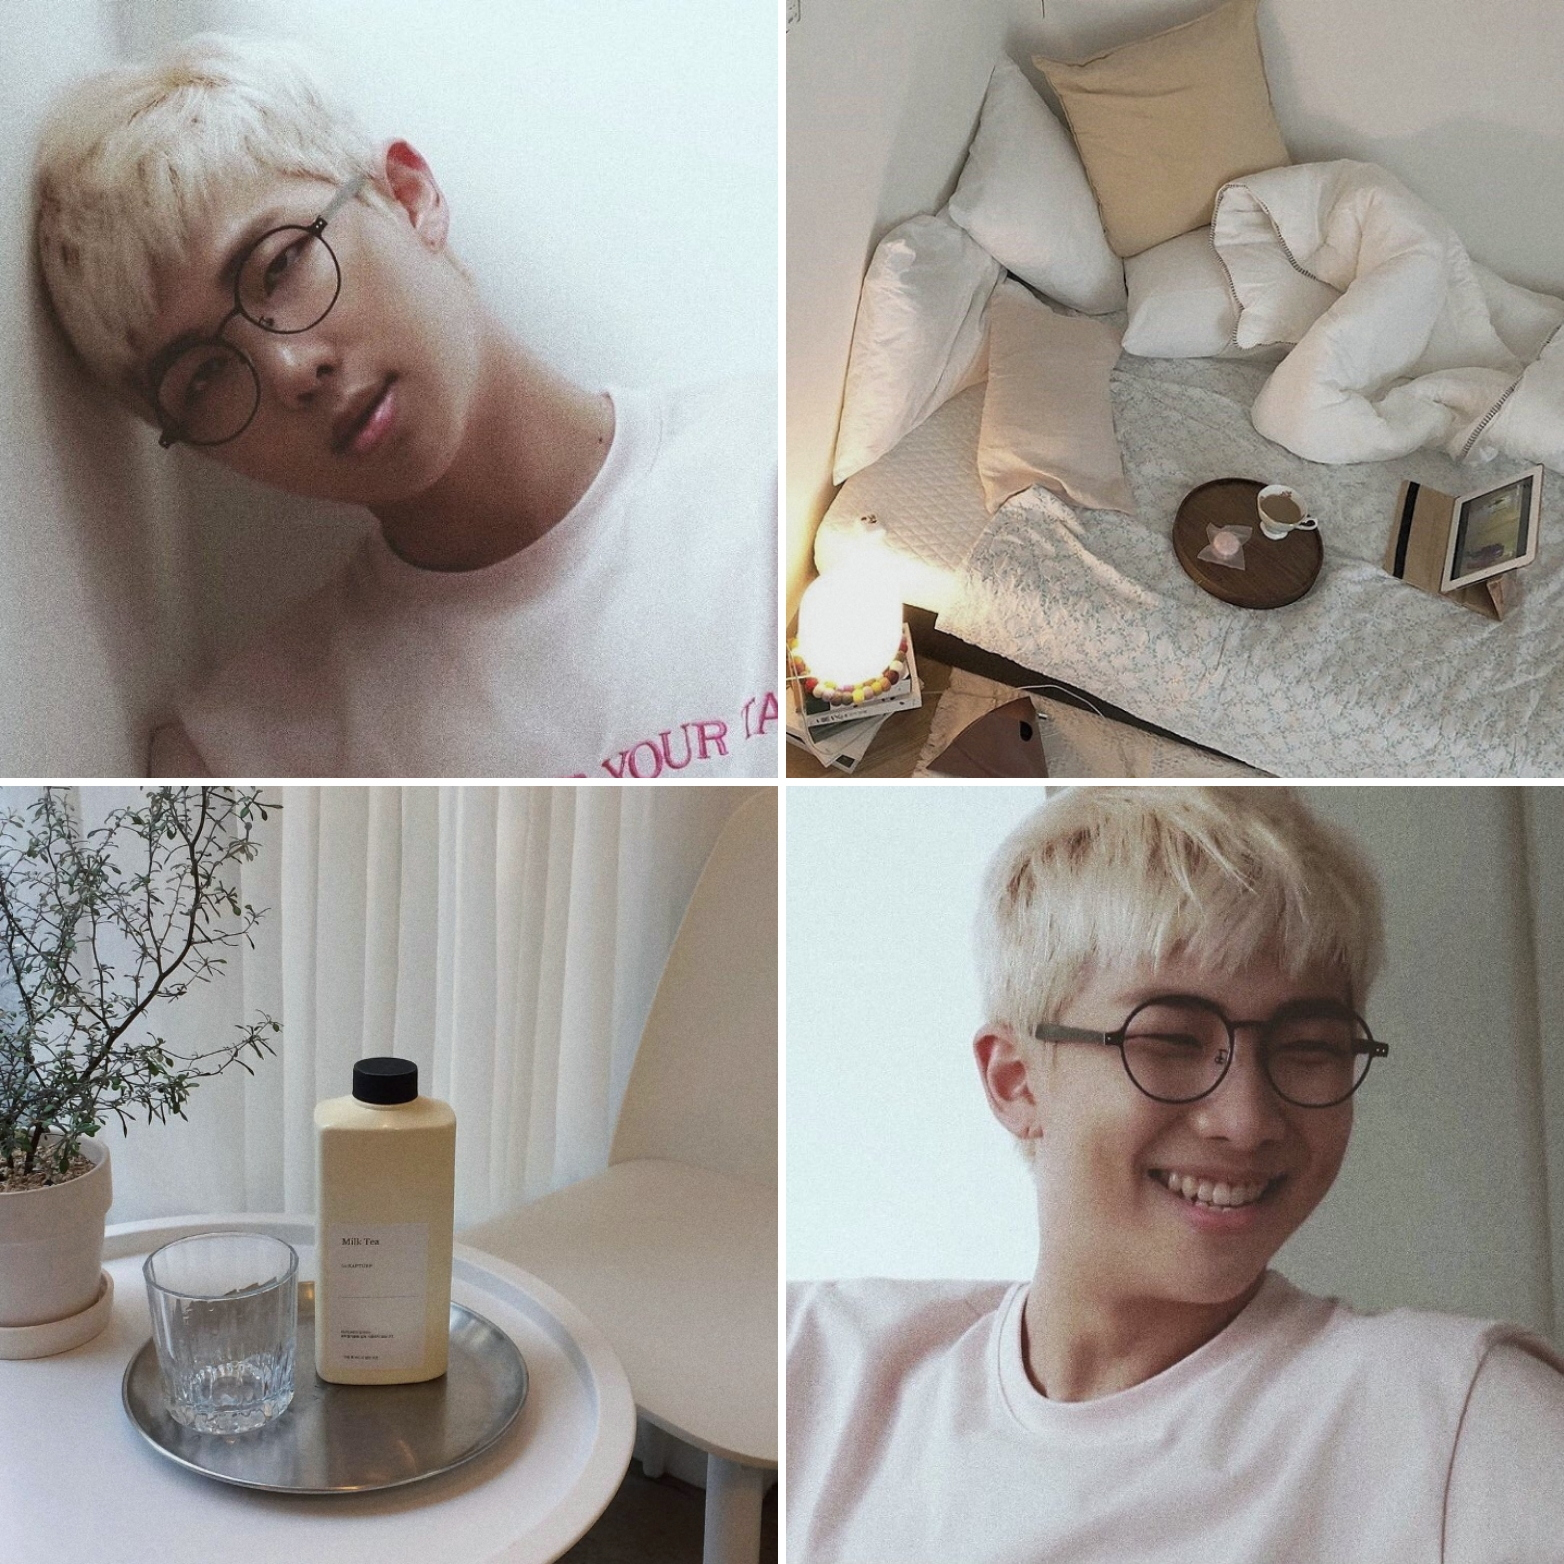 Namjoon Soft Aesthetic Edit By Me Bts Namjoon Rm Aesthetic Collage Edit Soft White Beige Fashion Photography Food Cute Yoonji Collages Vsco